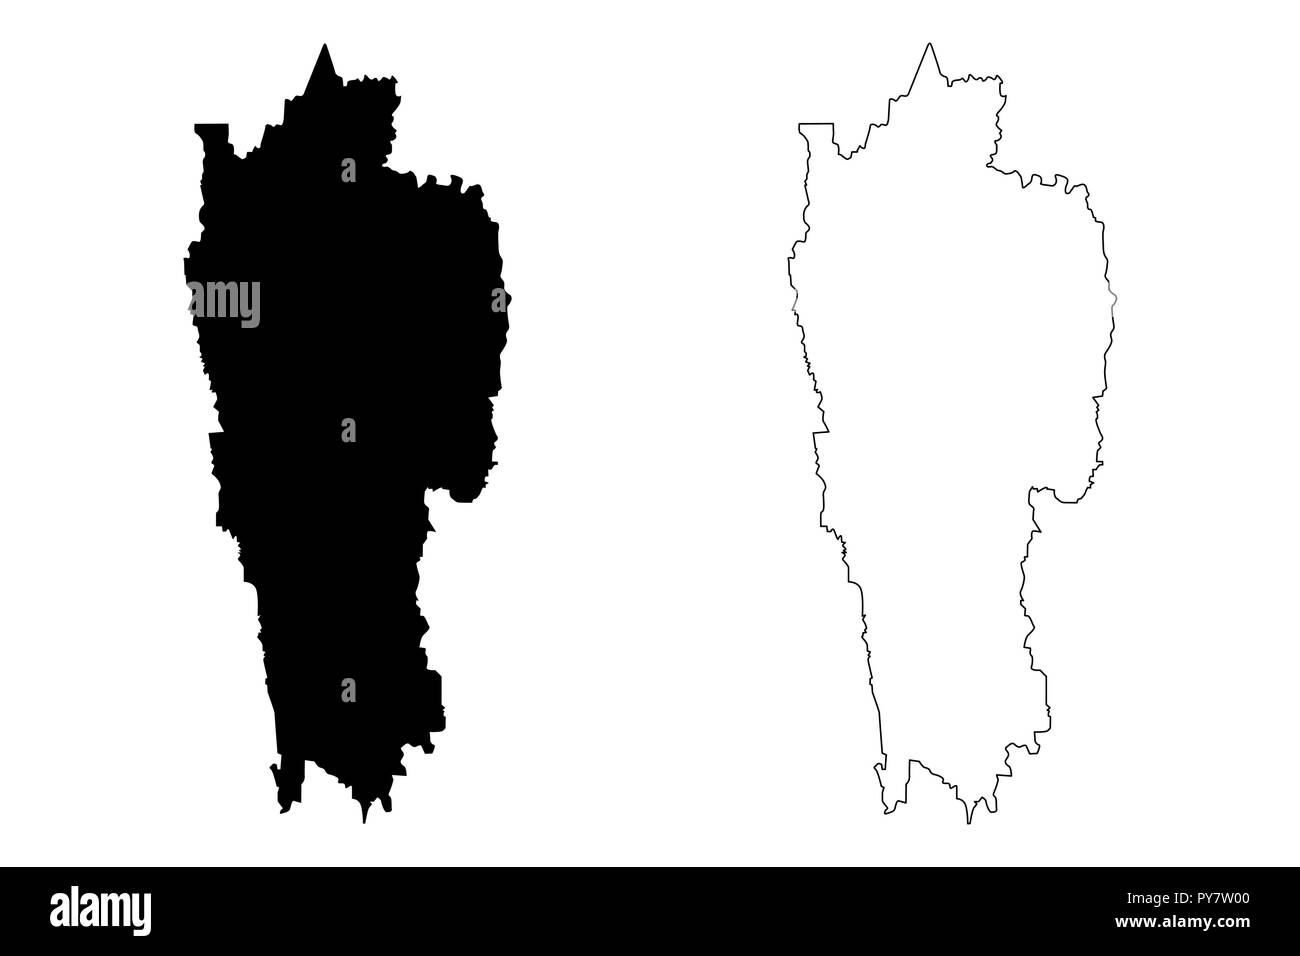 India Map With States Cut Out Stock Images & Pictures - Alamy